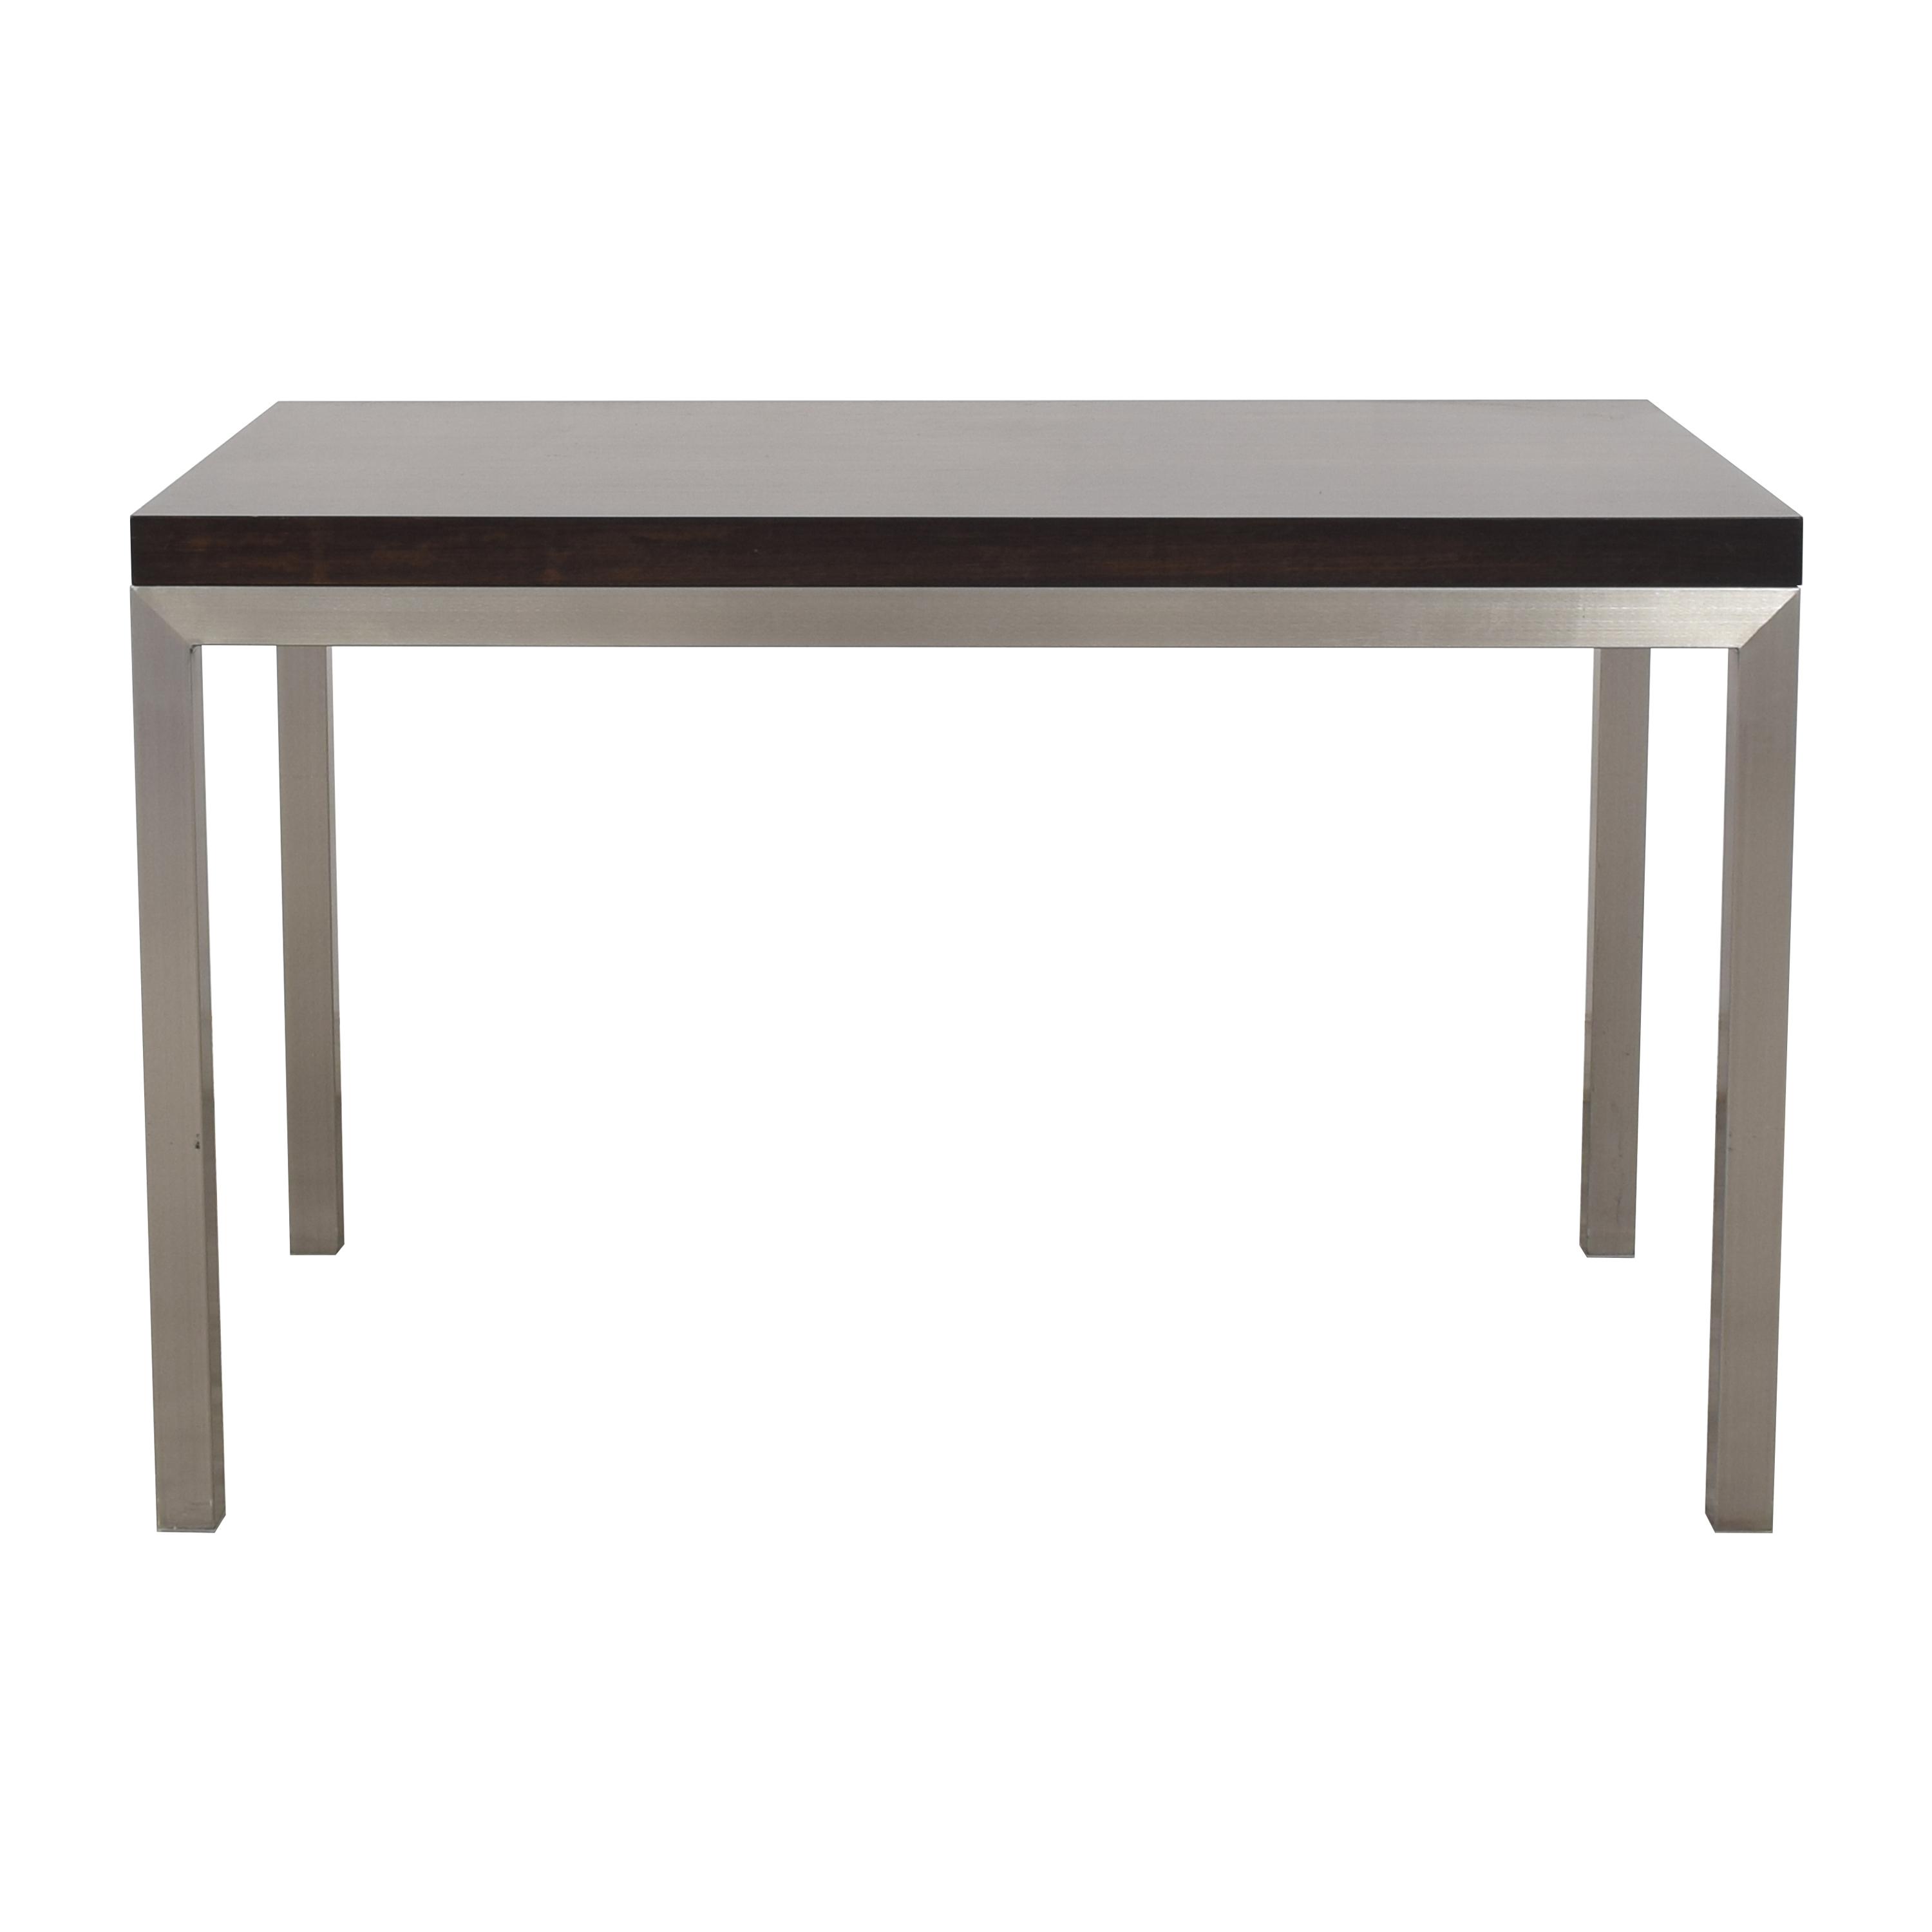 Crate & Barrel Crate & Barrel Parsons Dining Table price